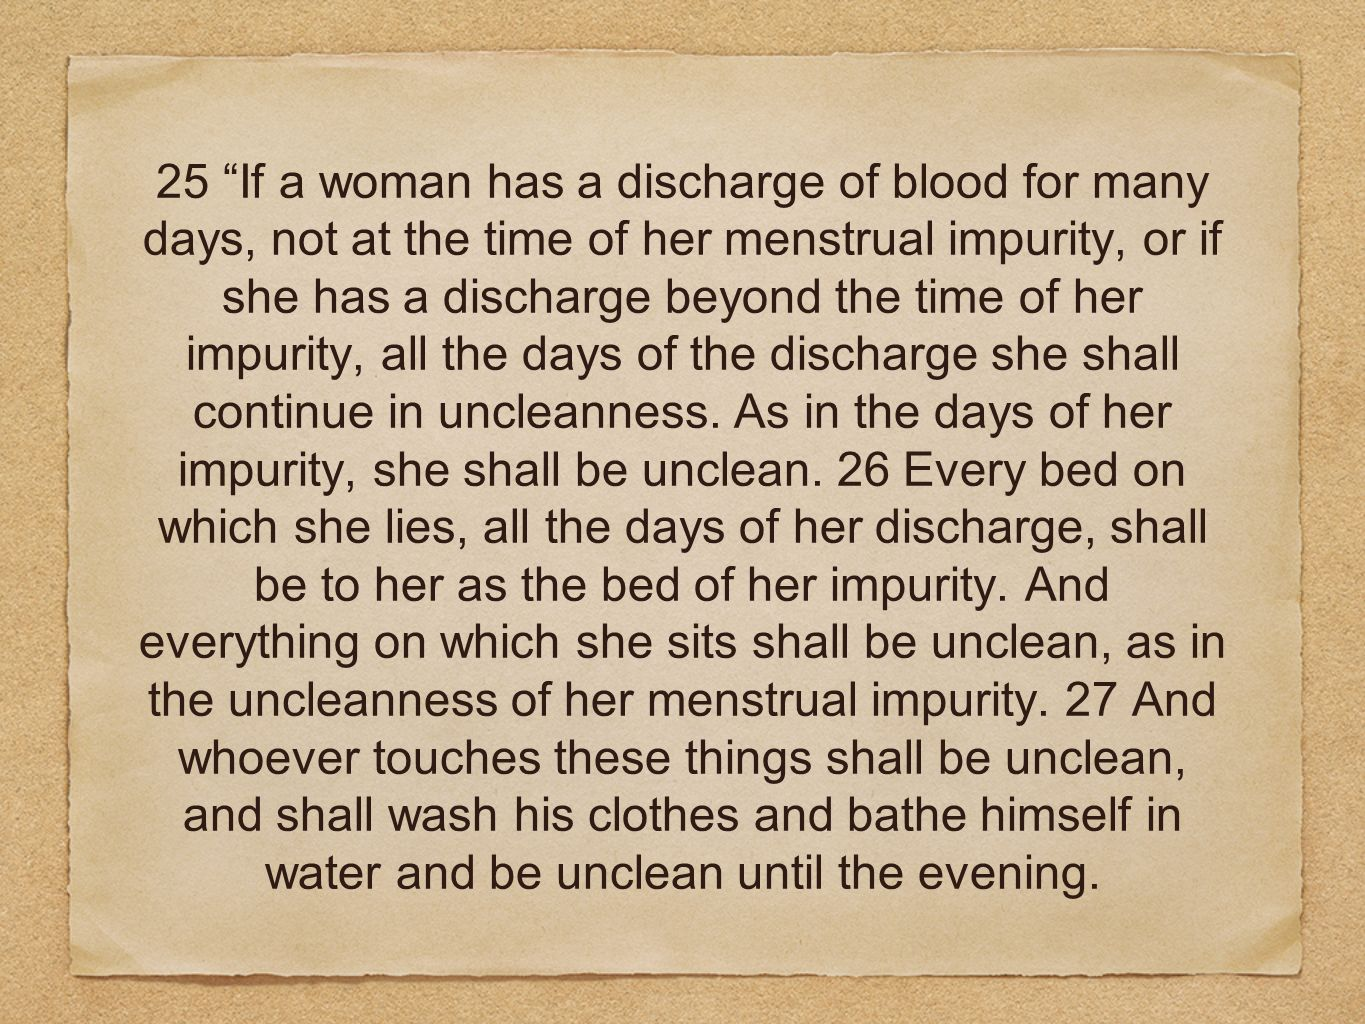 25 If a woman has a discharge of blood for many days, not at the time of her menstrual impurity, or if she has a discharge beyond the time of her impurity, all the days of the discharge she shall continue in uncleanness.